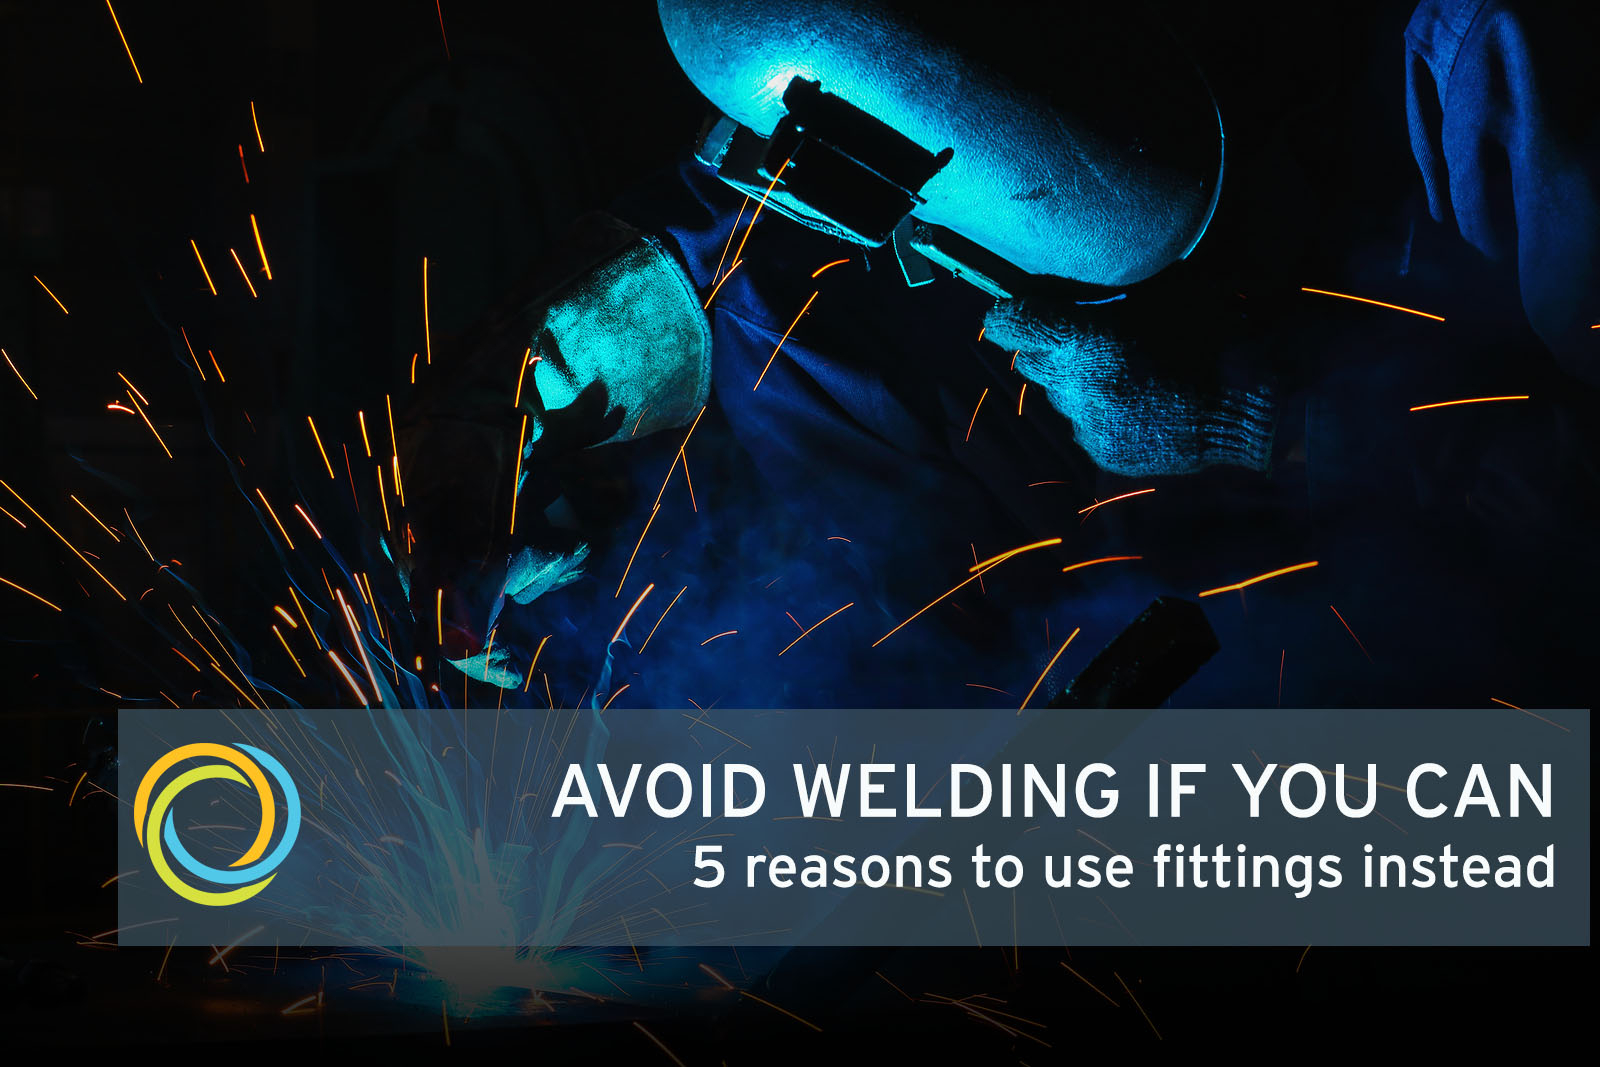 Avoid welding use Kee Klamp